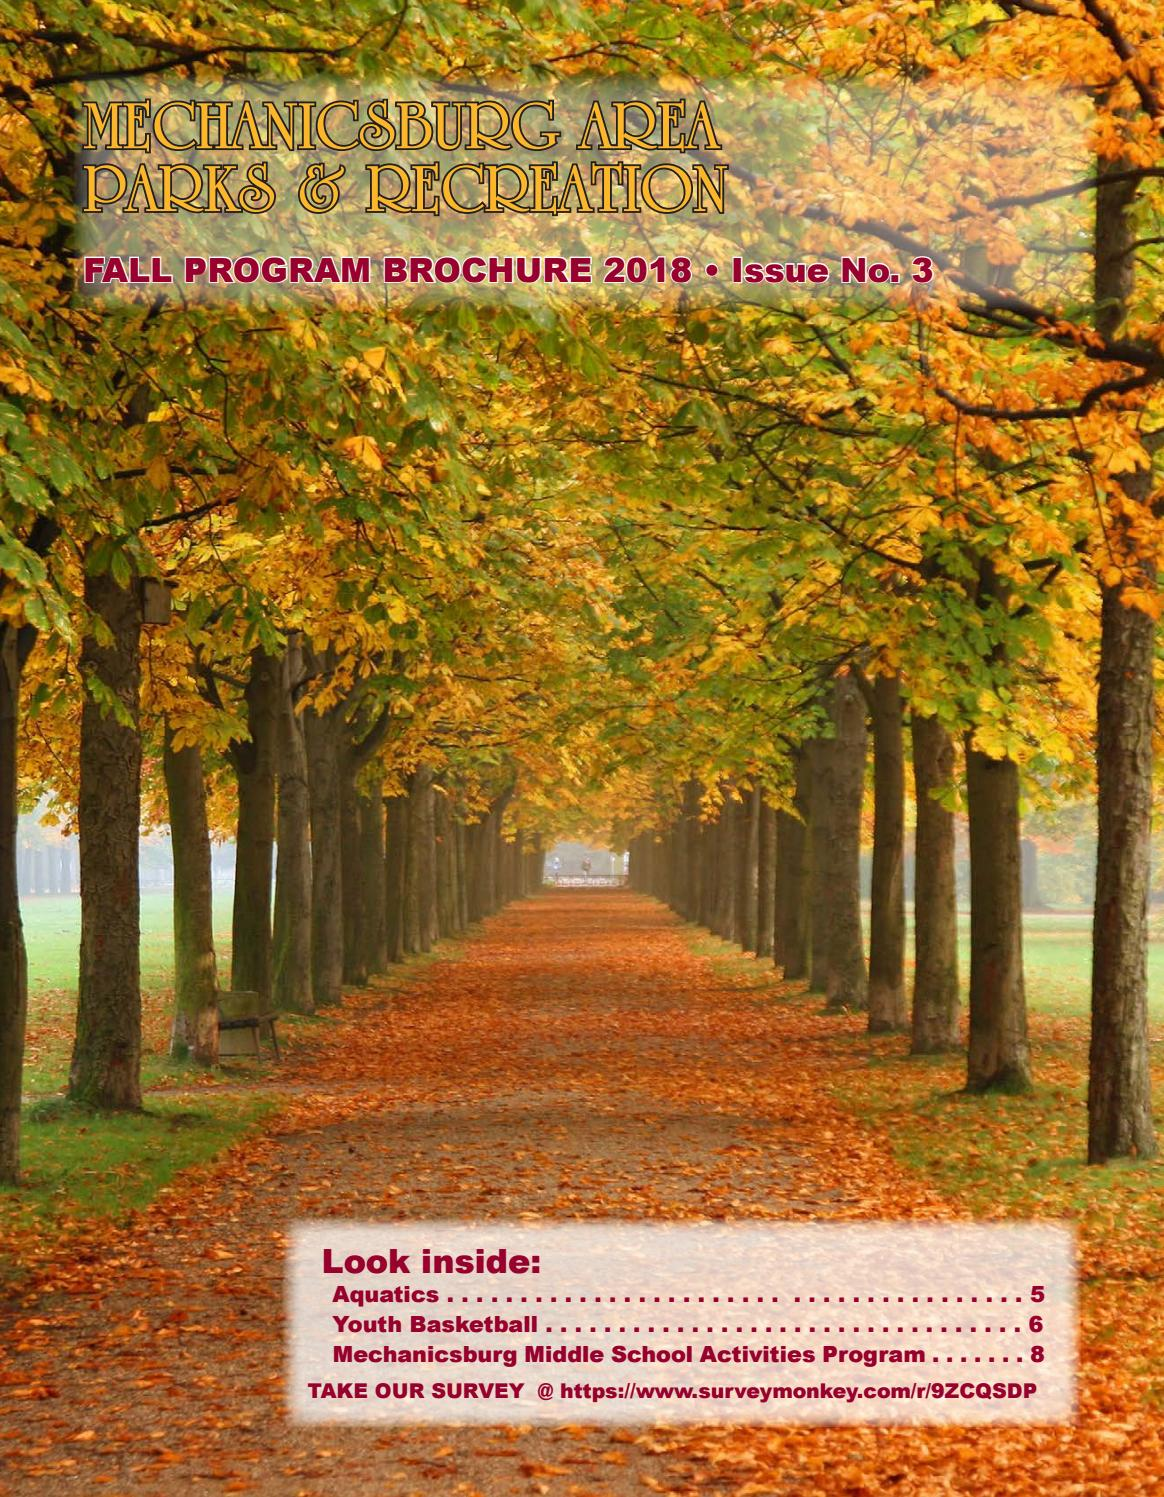 Fall Brochure 2018 By Mechanicsburg Area Parks Recreation Issuu